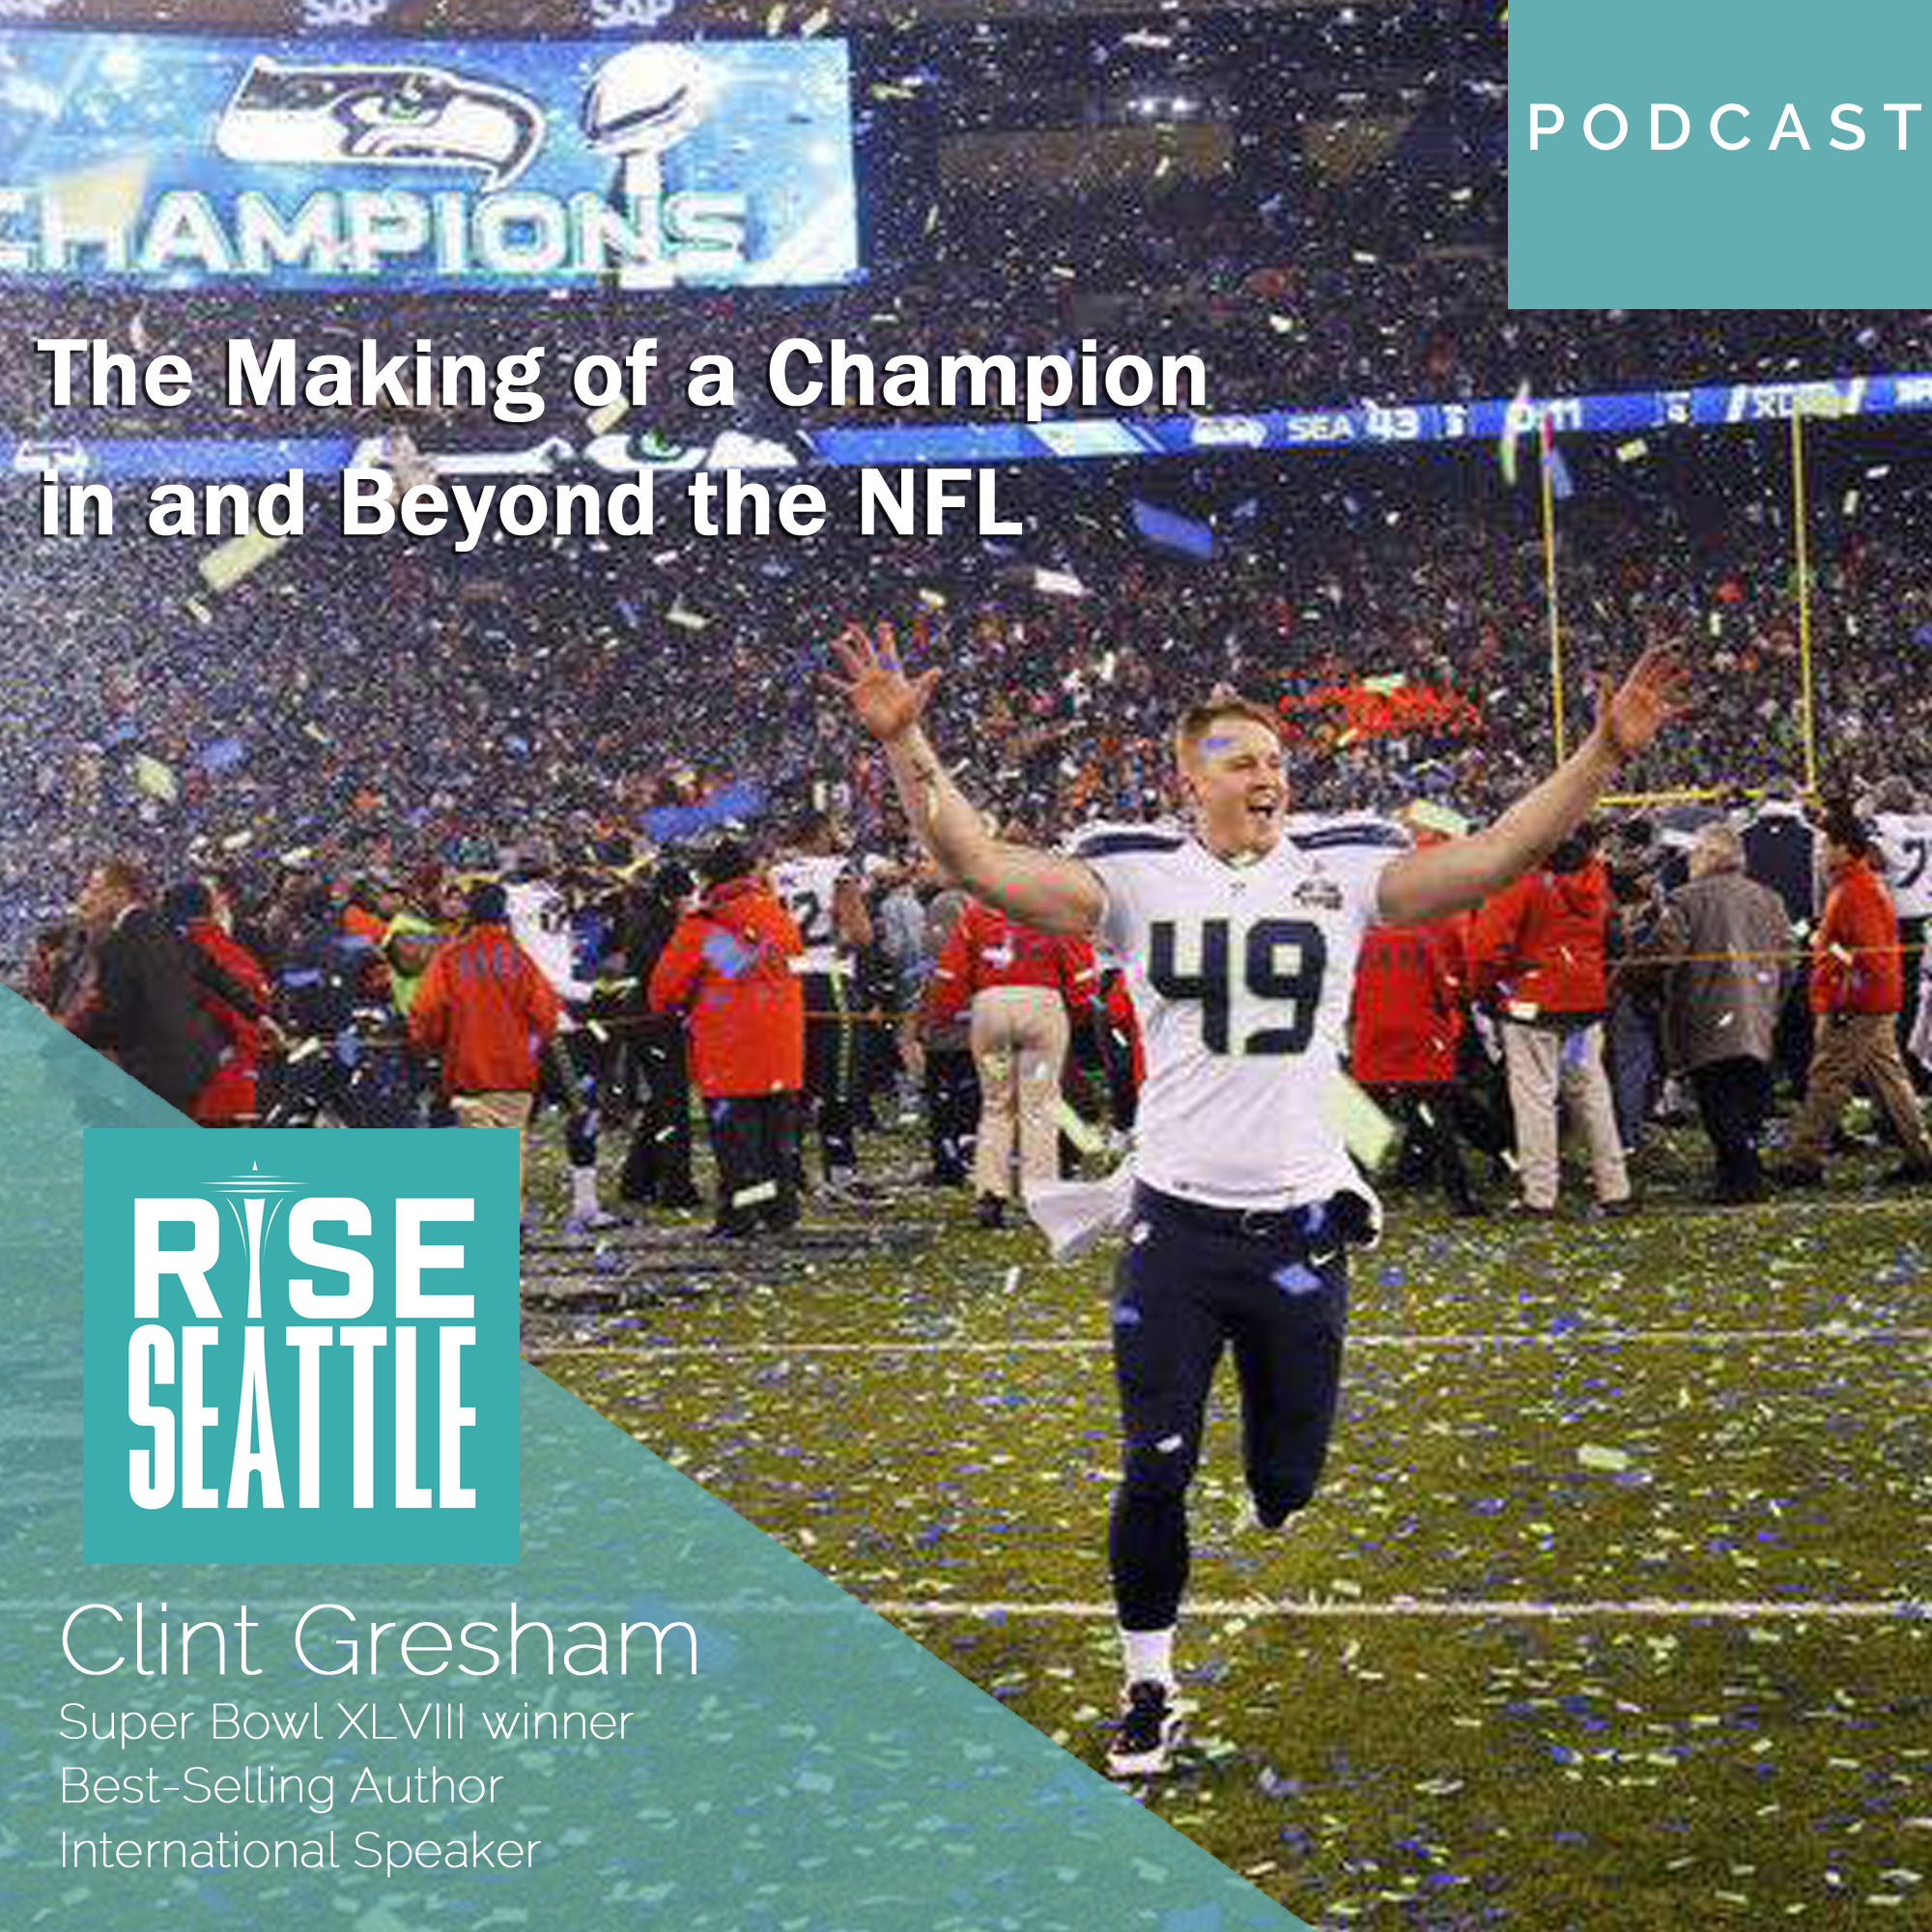 S2 E6: Clint Gresham: The Making of a Champion in and Beyond the NFL